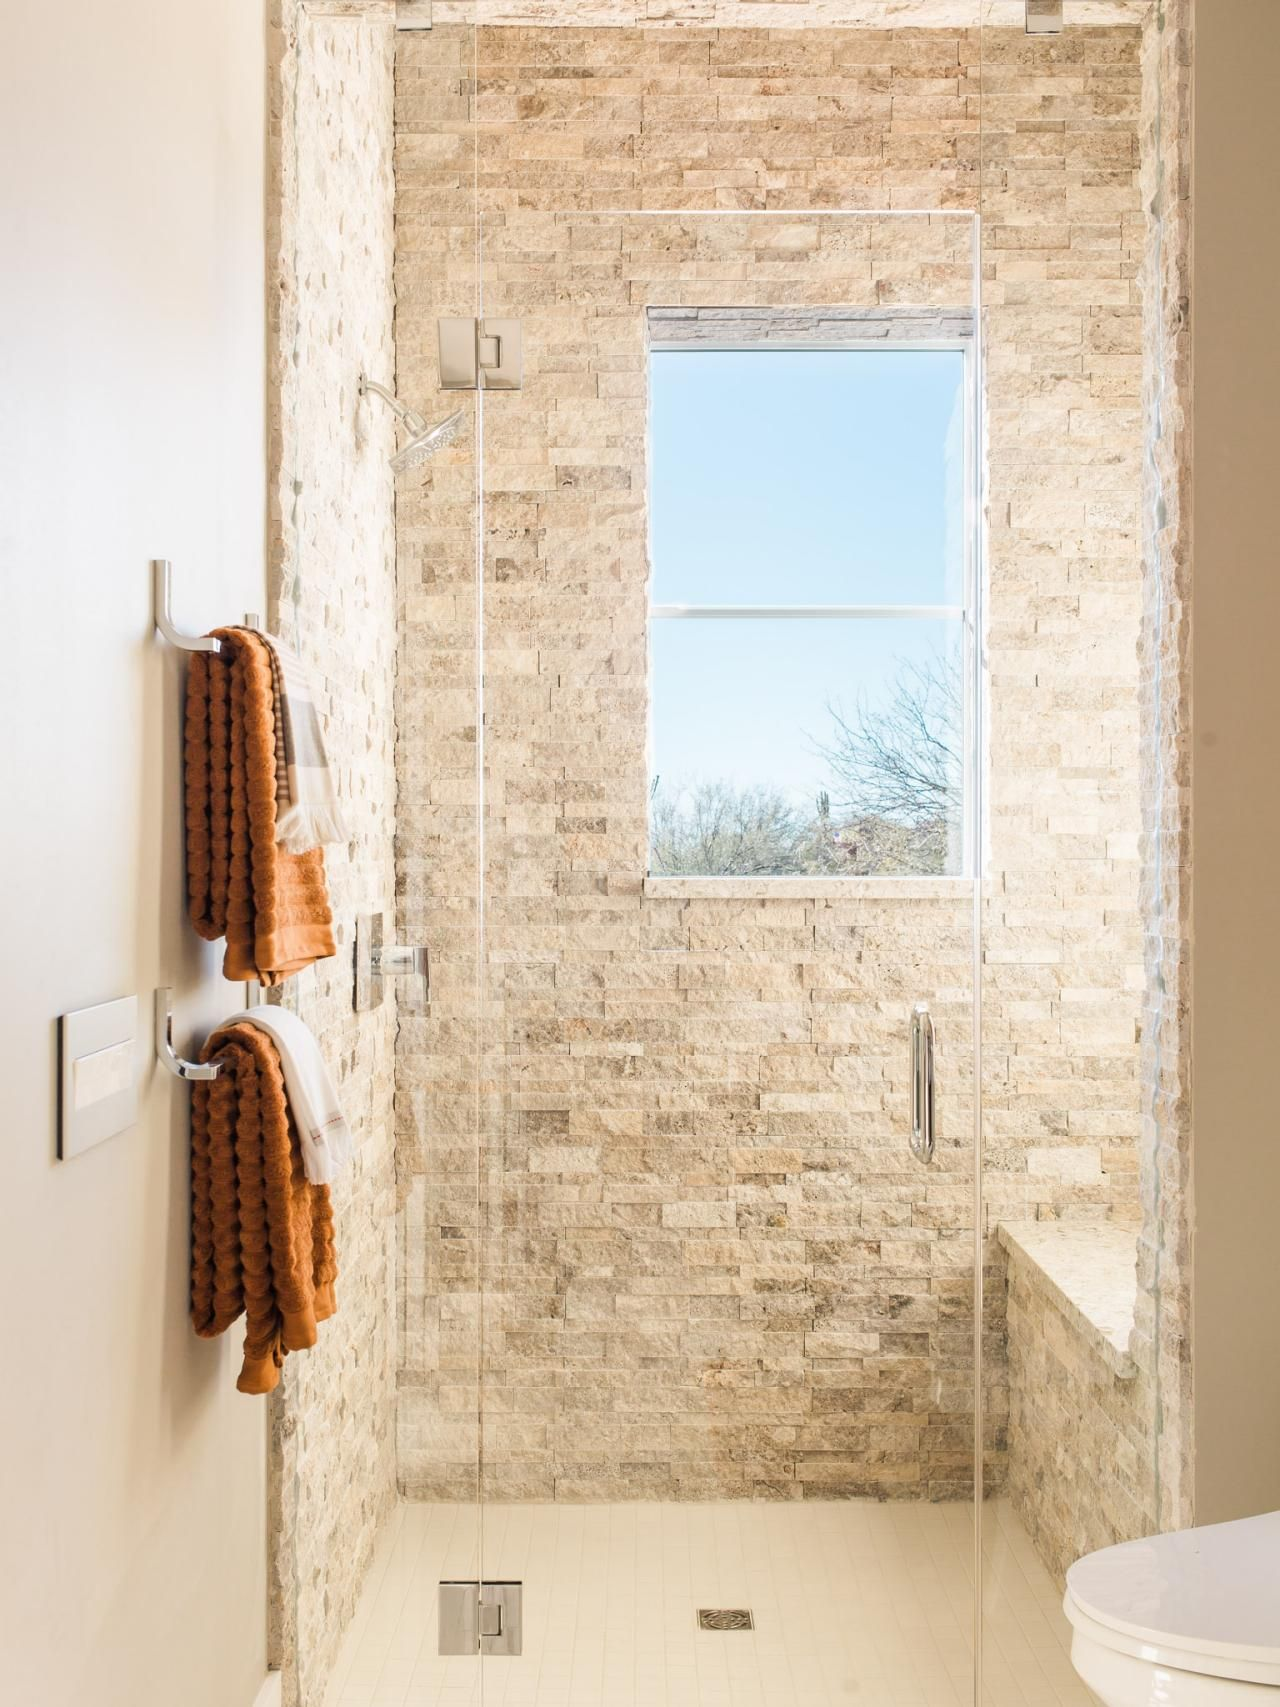 20 fresh bathroom tile trends to look for in 2017 (with